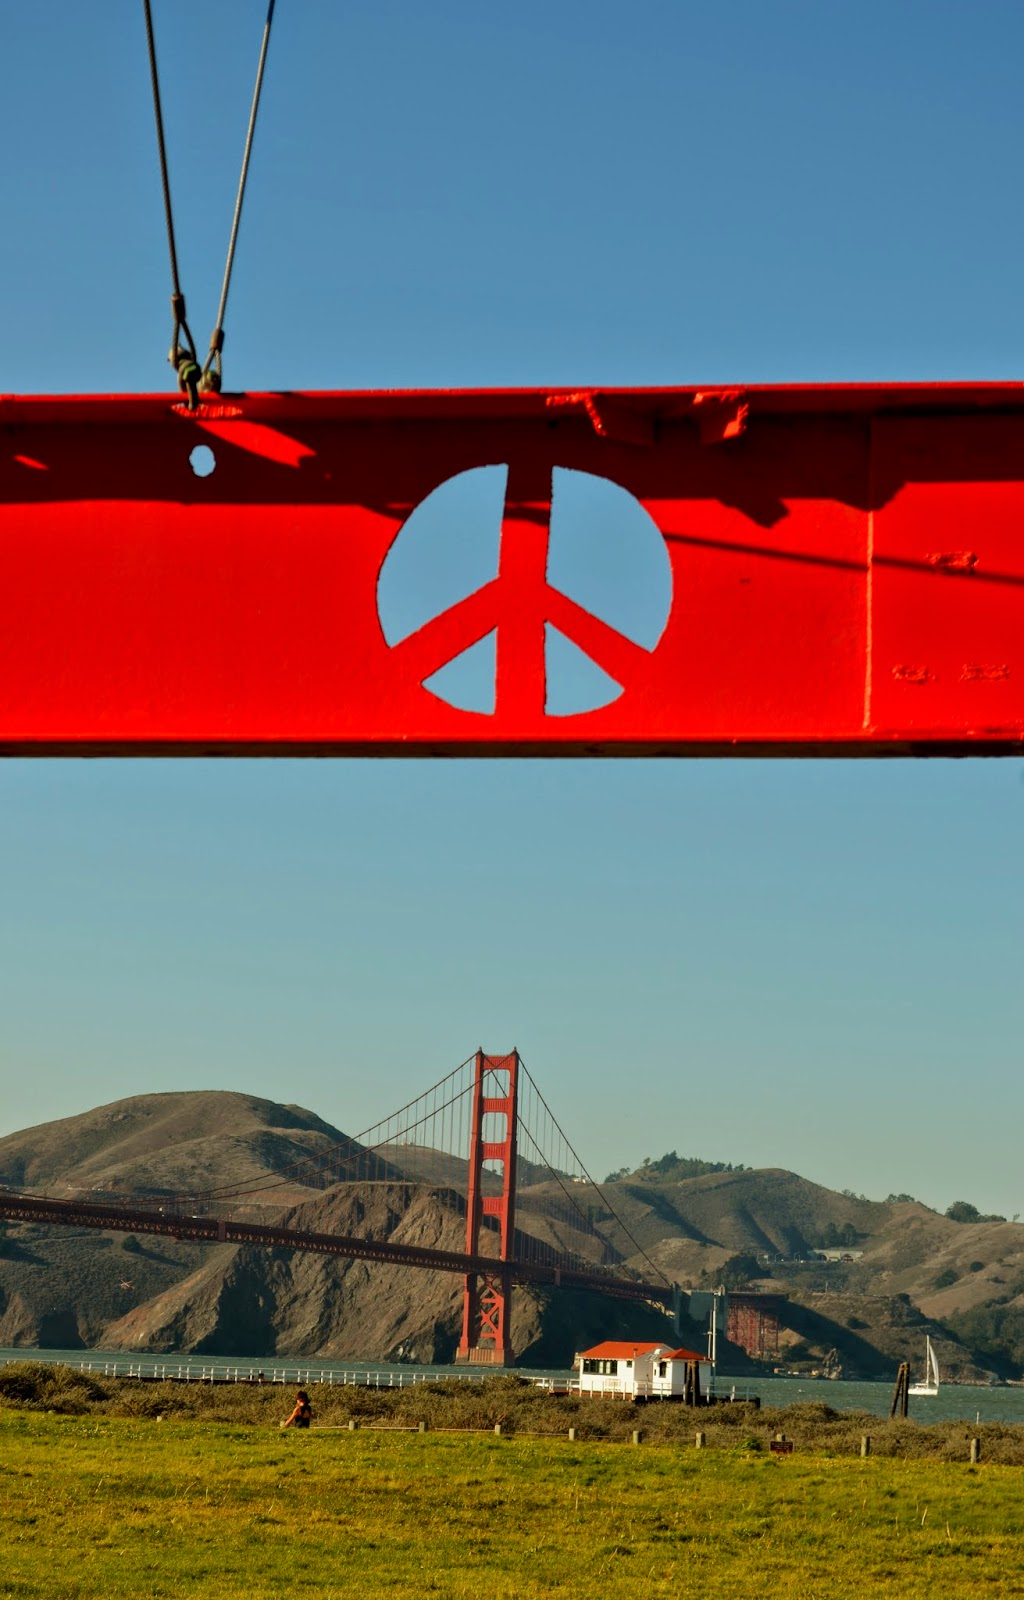 A peace sign in a Mark di Suvero sculpture at Chrissy Field with the Golden Gate Bridge in the background